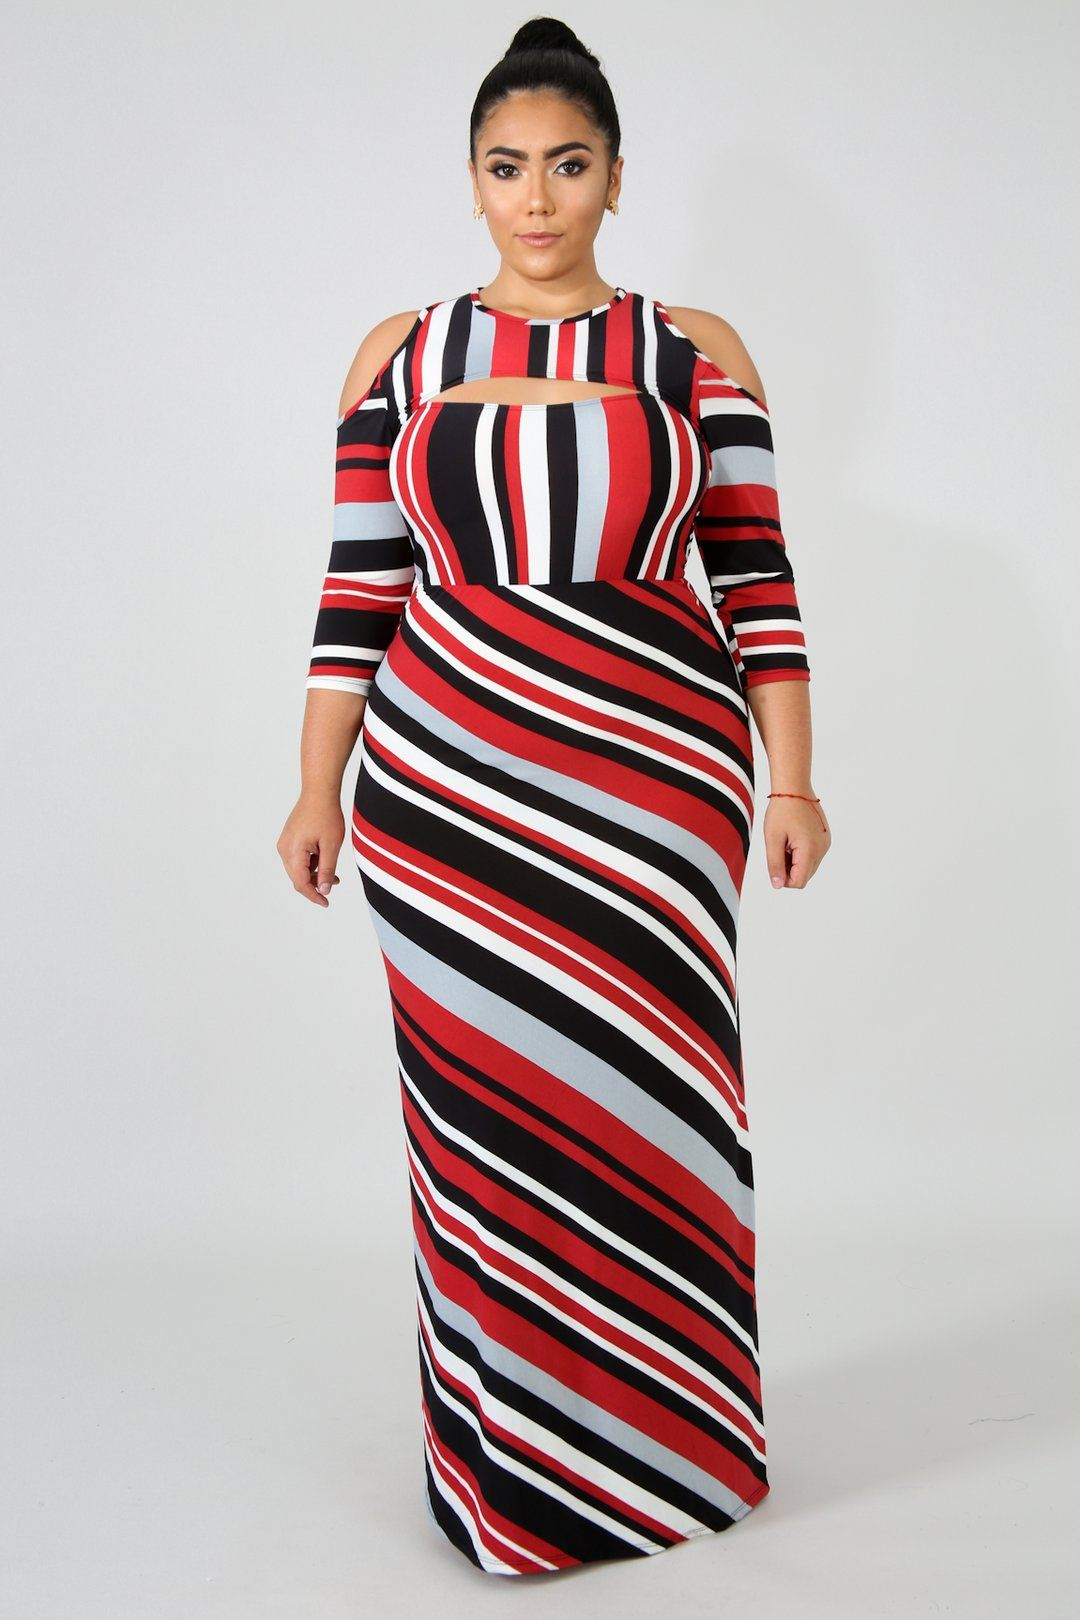 Striped Maxi Dress Style Qd72089 4descriptionthis Striped Maxi Dress Featuring Soft Stretchy Fabric Cold Shoul Striped Maxi Dresses Maxi Dress Plus Dresses [ 1620 x 1080 Pixel ]